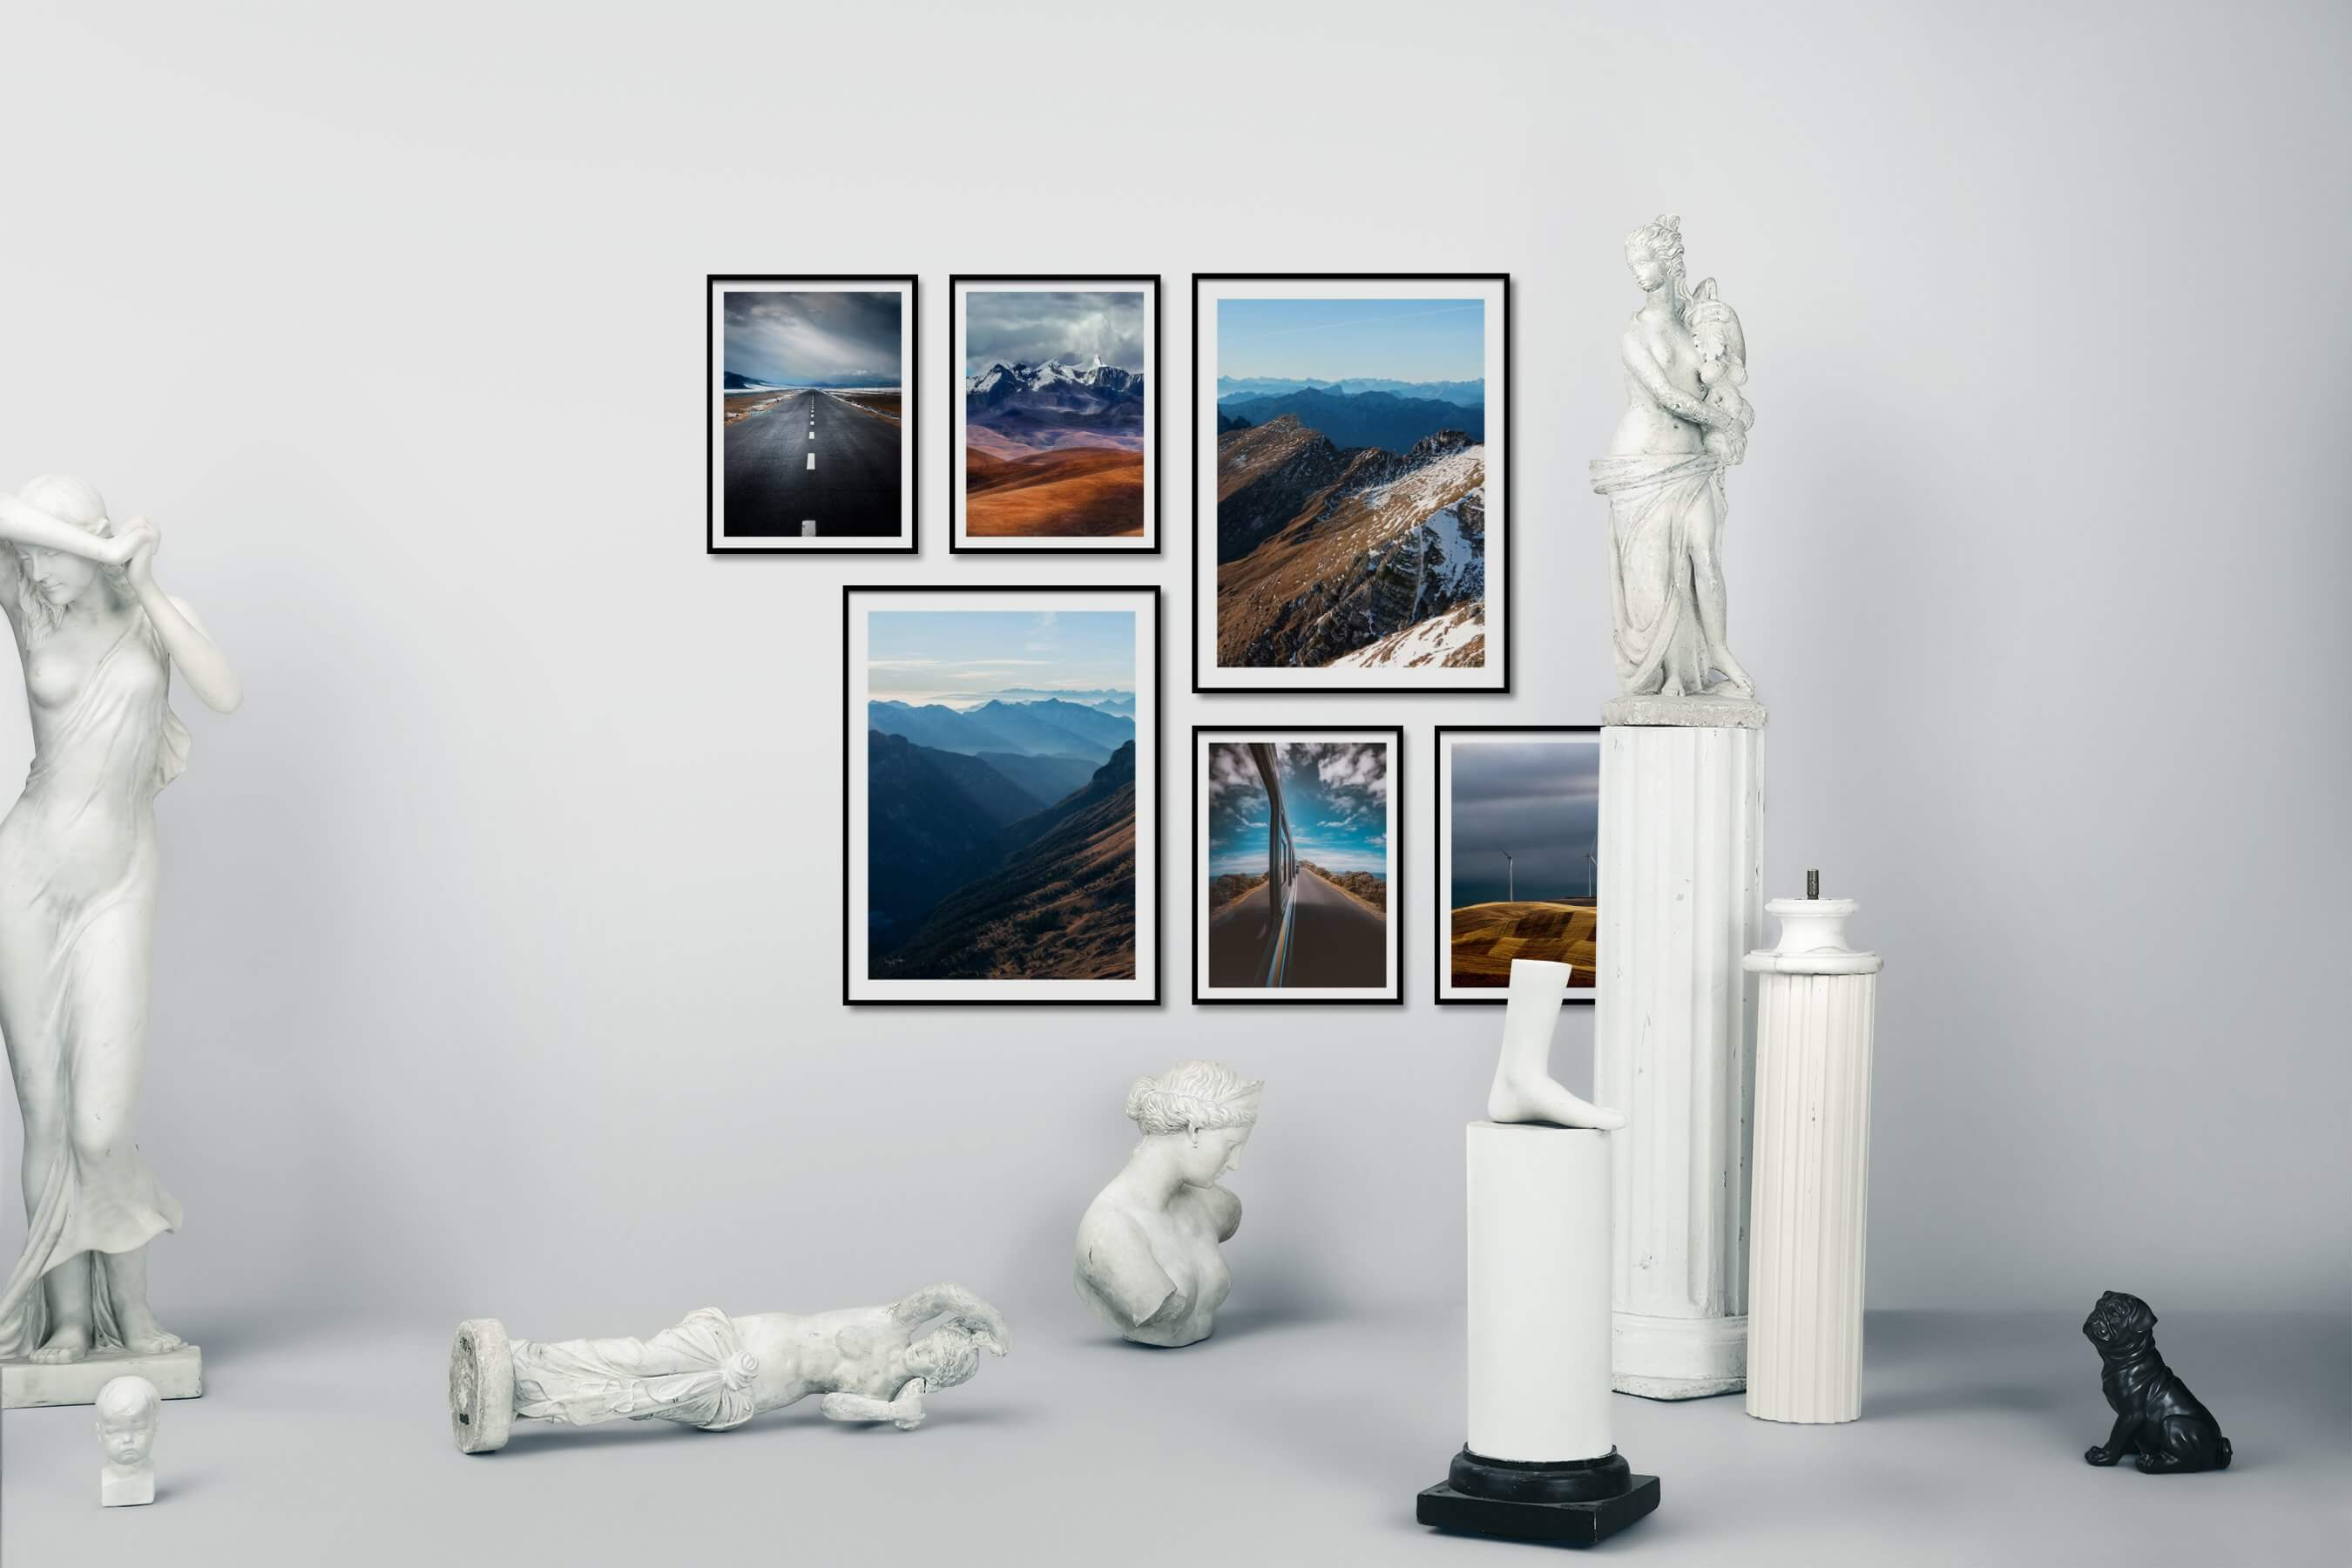 Gallery wall idea with six framed pictures arranged on a wall depicting Country Life, Mindfulness, and Nature